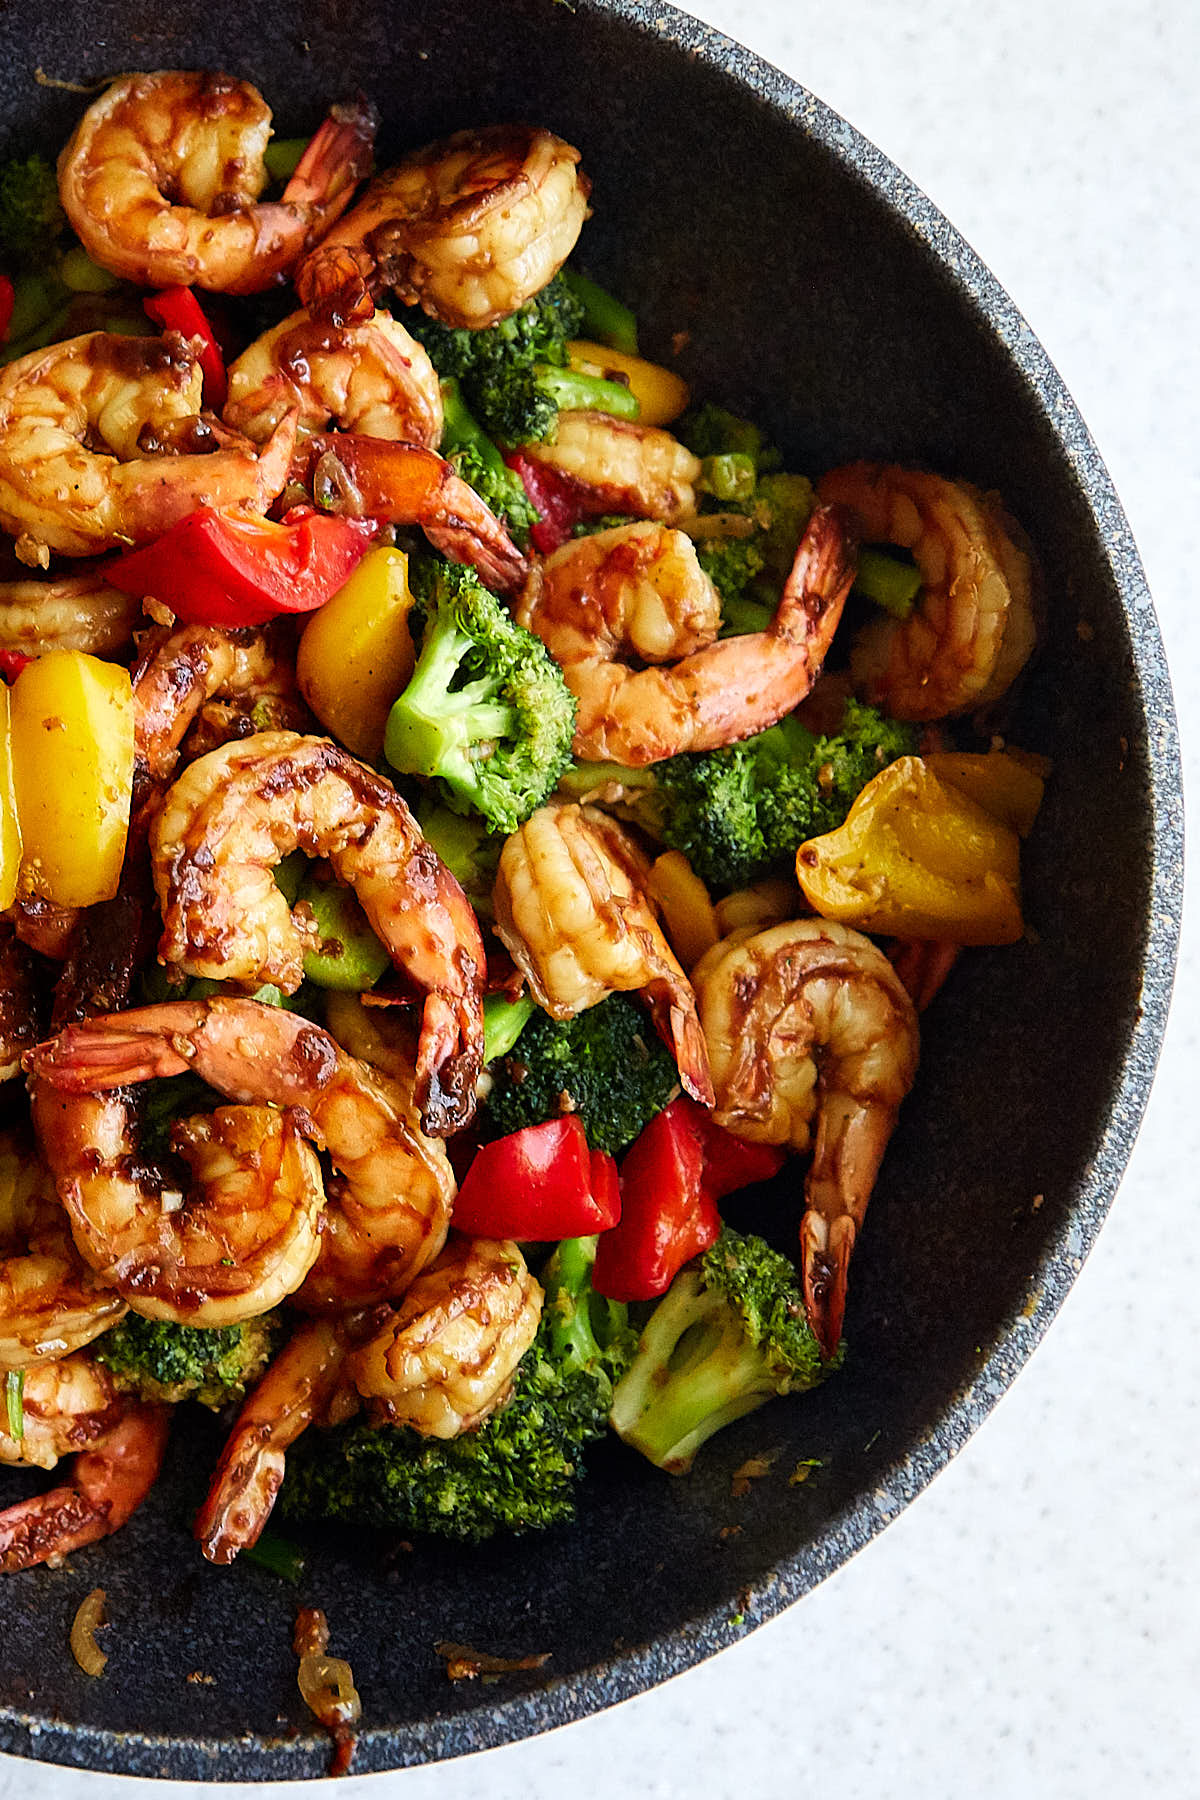 Boldly flavored, pungent and spicy Szechuan shrimp is a delicious dish that can be easily made at home in 25 minutes or less.